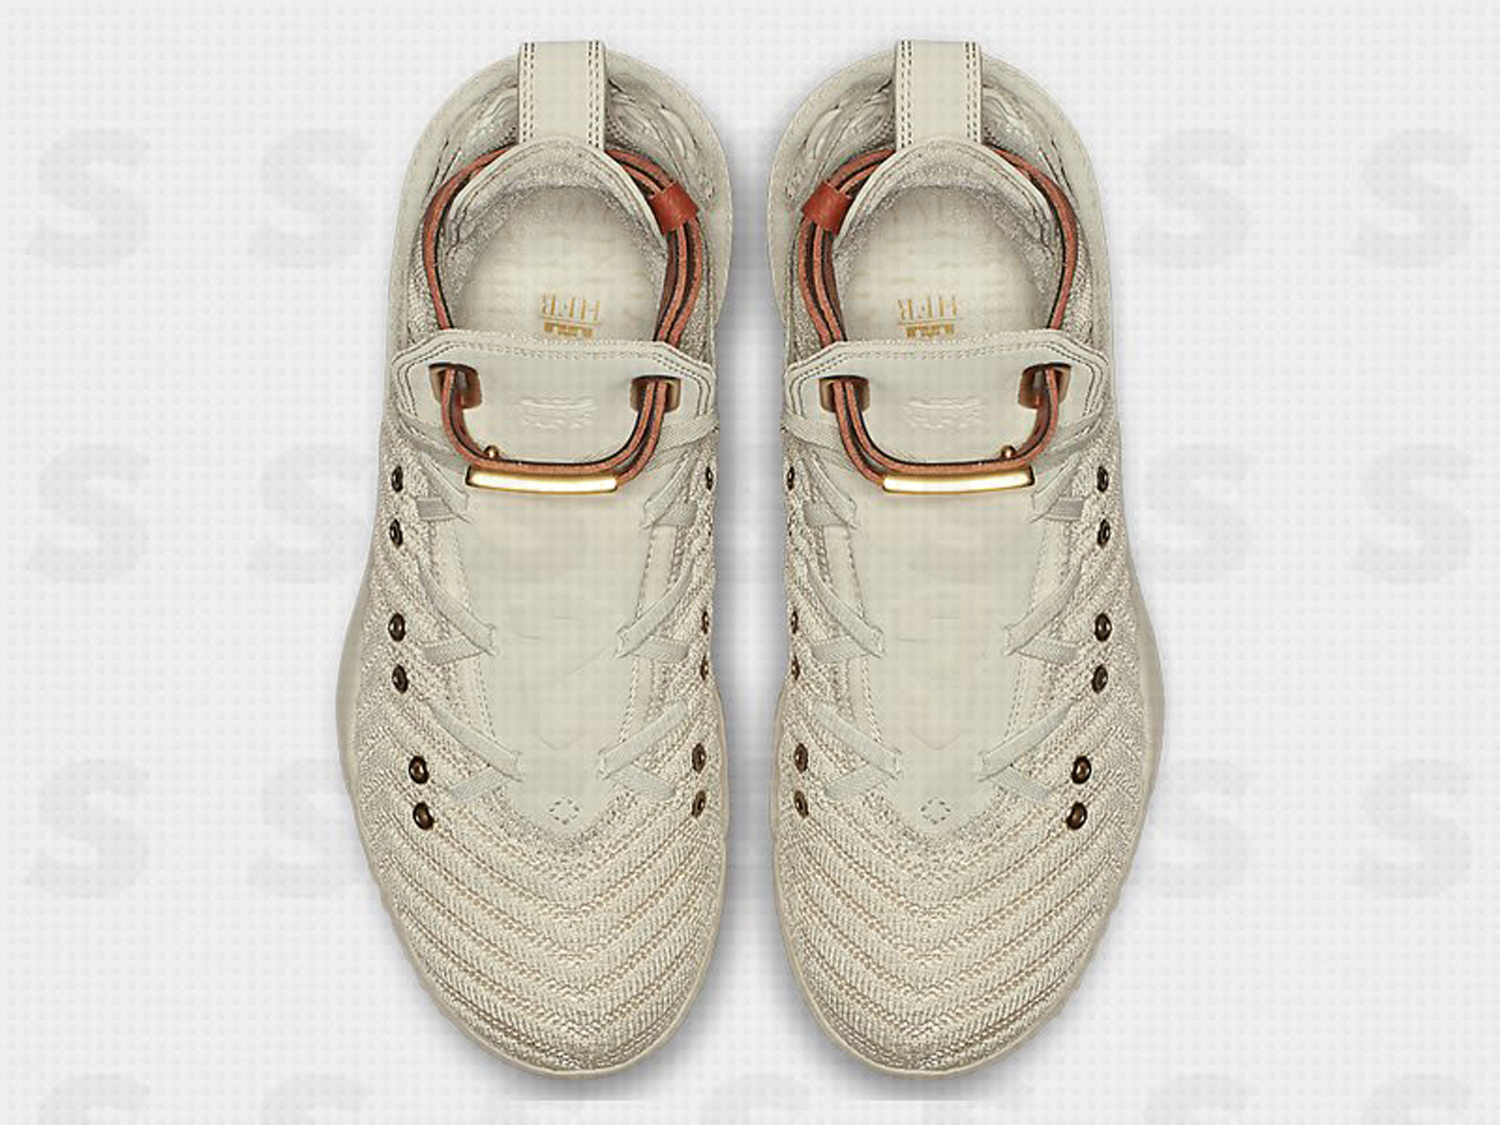 best website 2d107 bd108 Our Best Look Yet at the LeBron 16 for NYFW - WearTesters